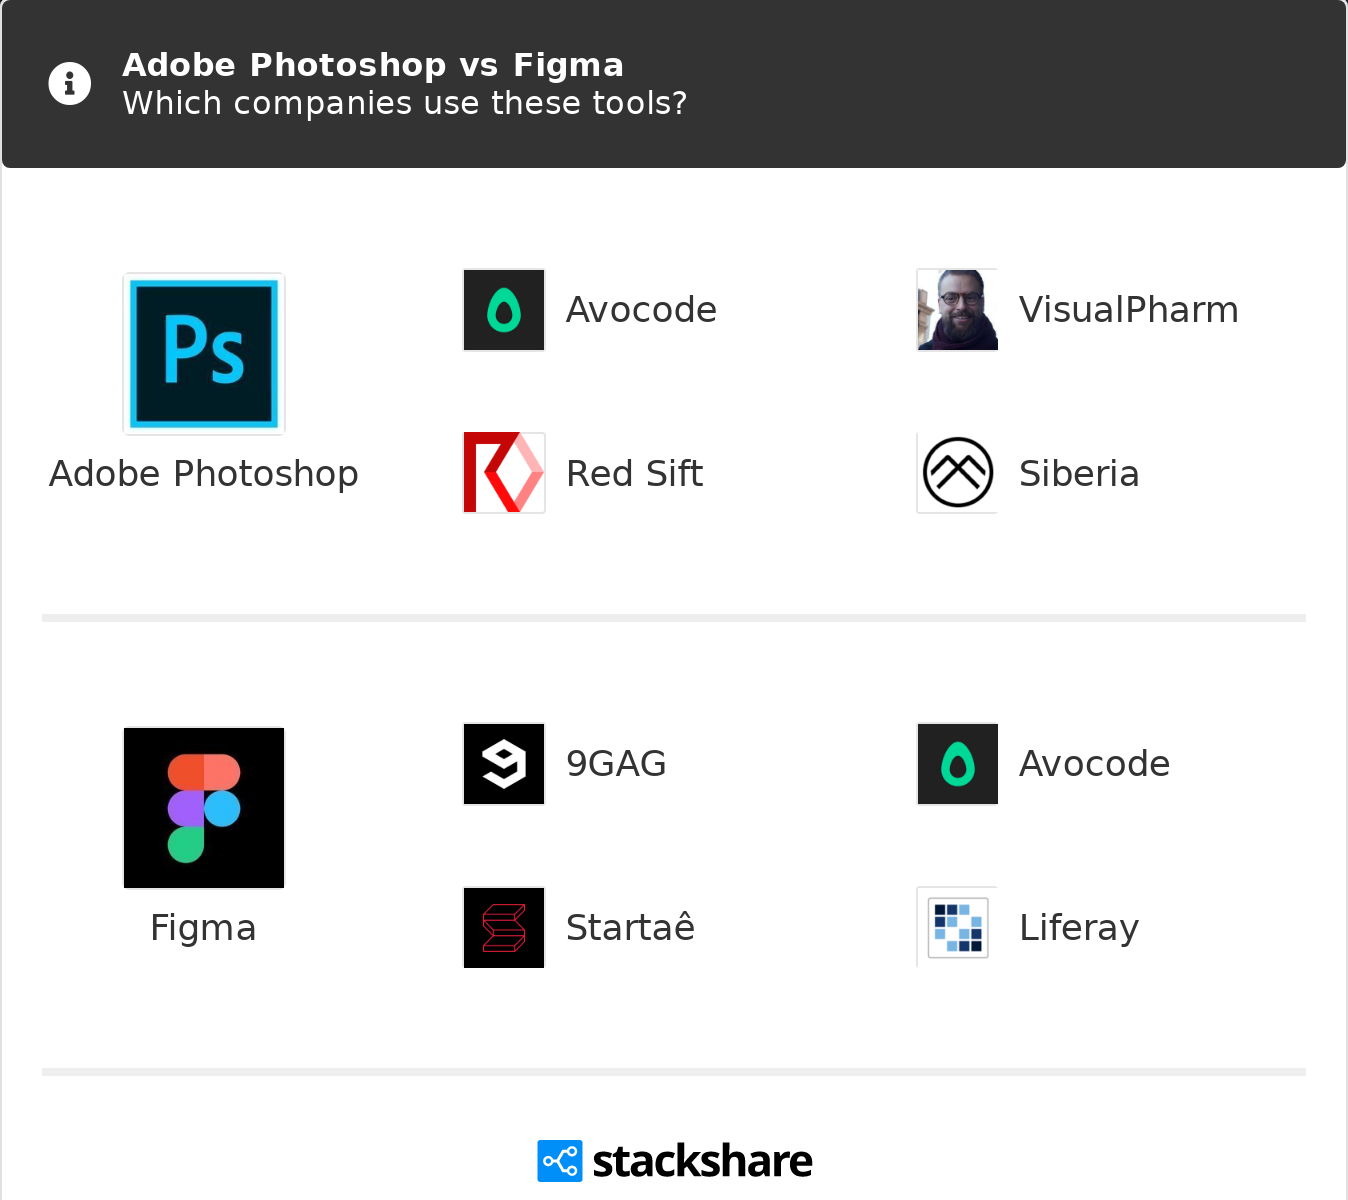 Adobe Photoshop vs Figma | What are the differences?